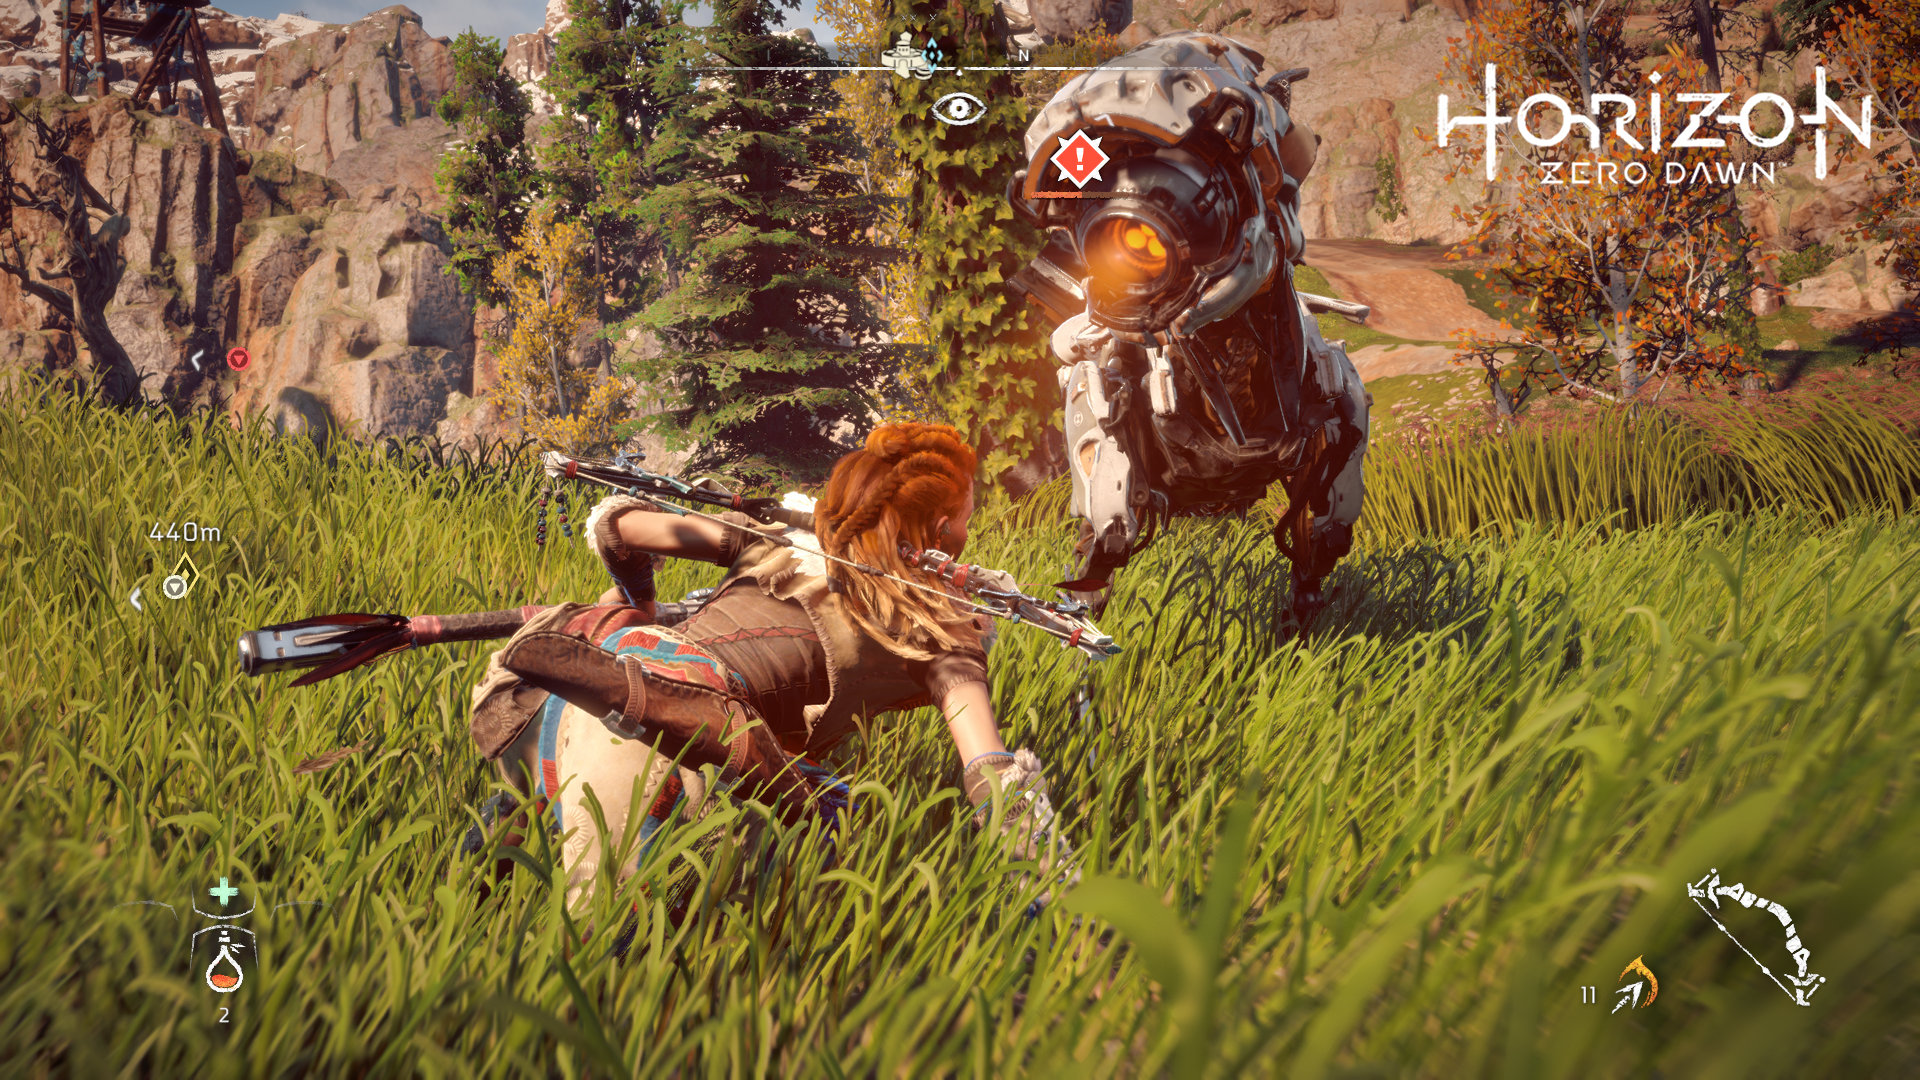 Horizon Zero Dawn stealth